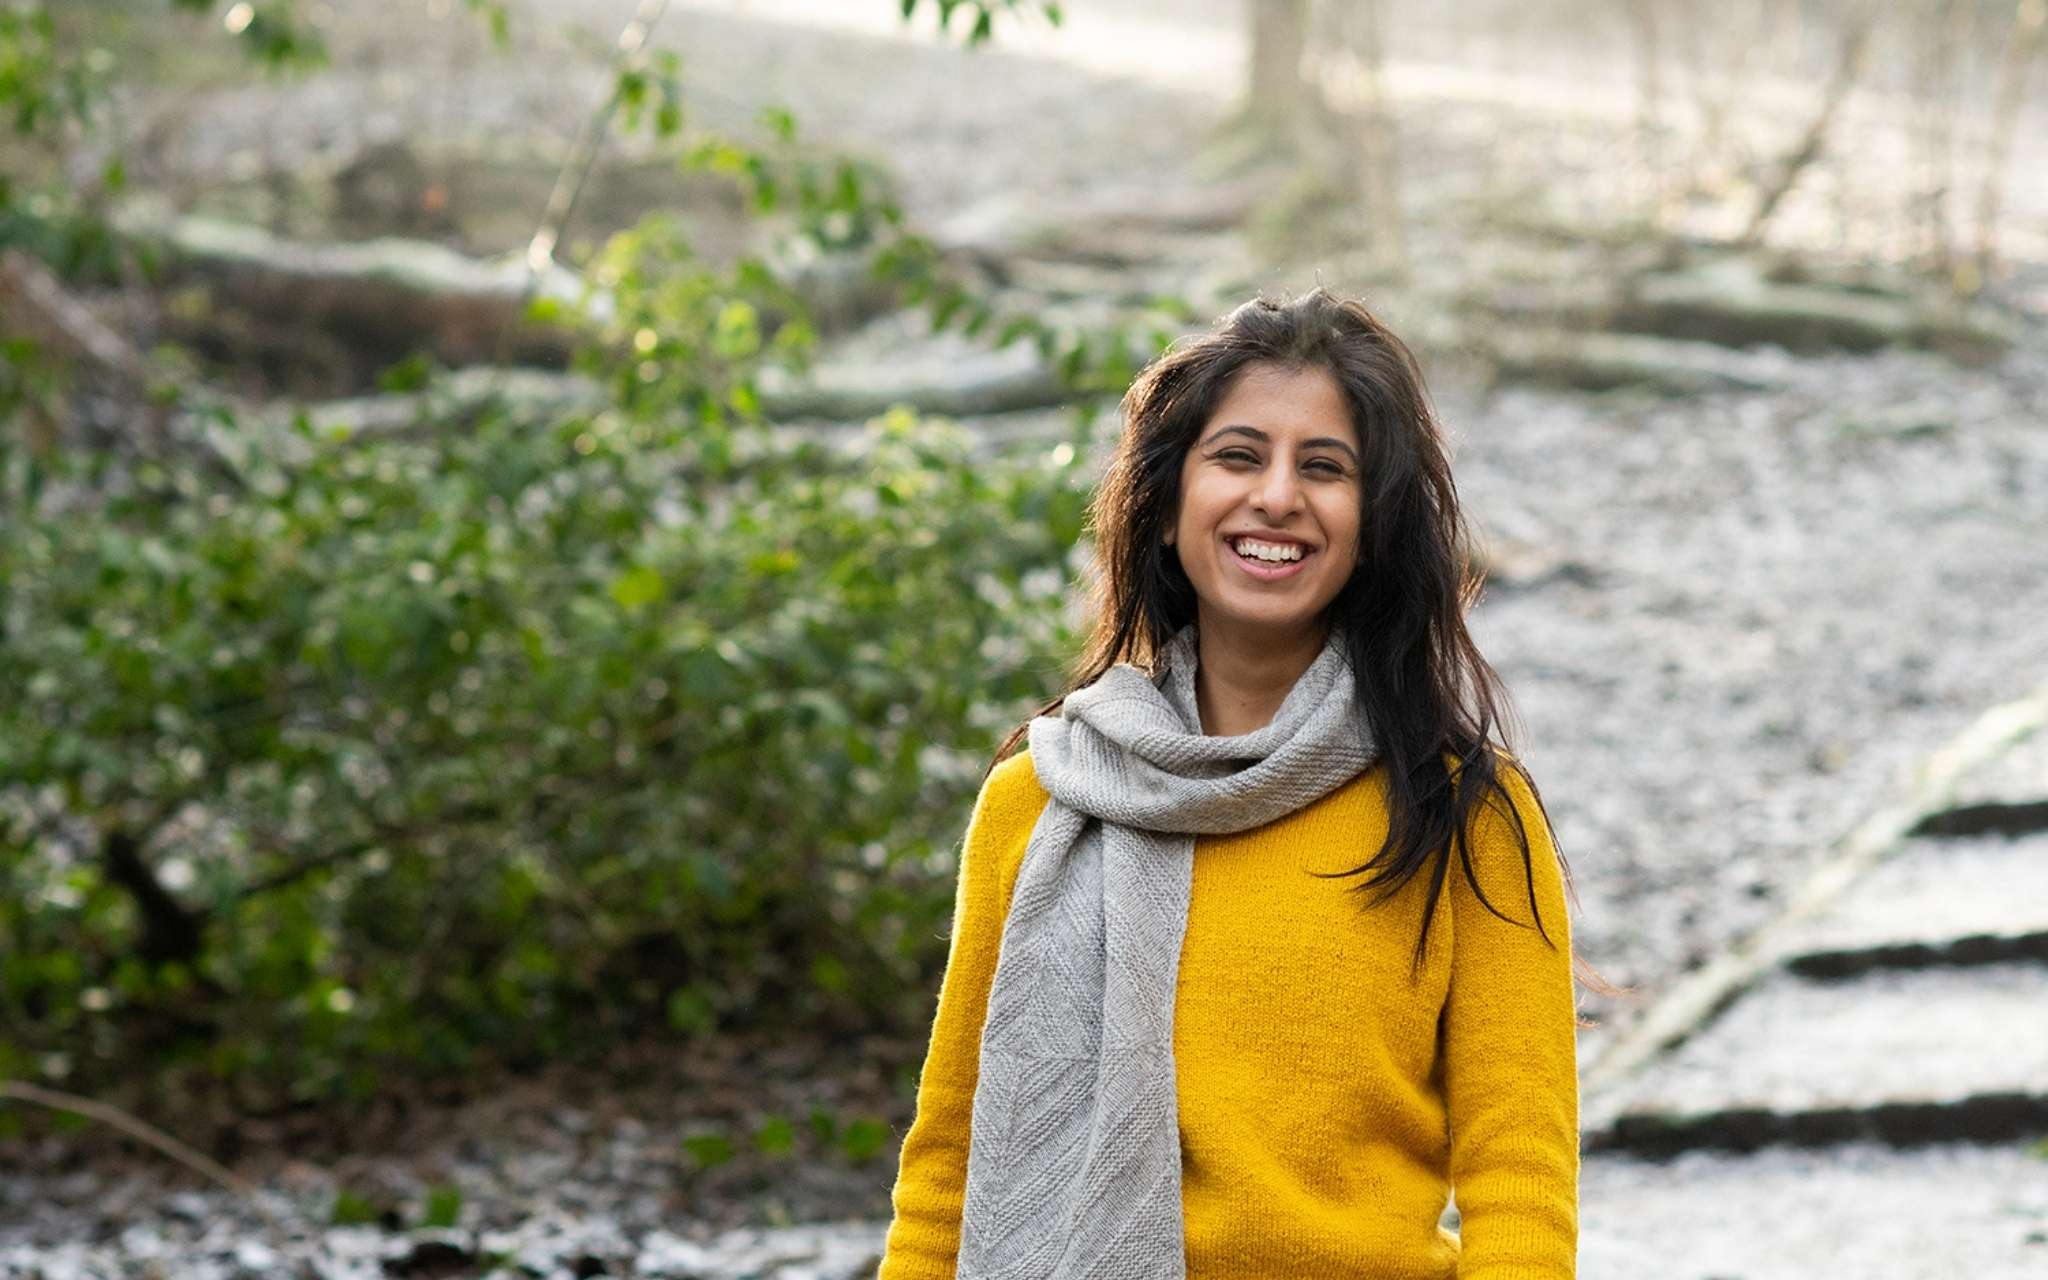 A woman of colour stands outdoors at the end of a stone path, with foliage to the left side. She has long dark hair and is wearing a yellow sweater and grey scarf which is wrapped around her neck and then hanging down to the front. She is smiling.